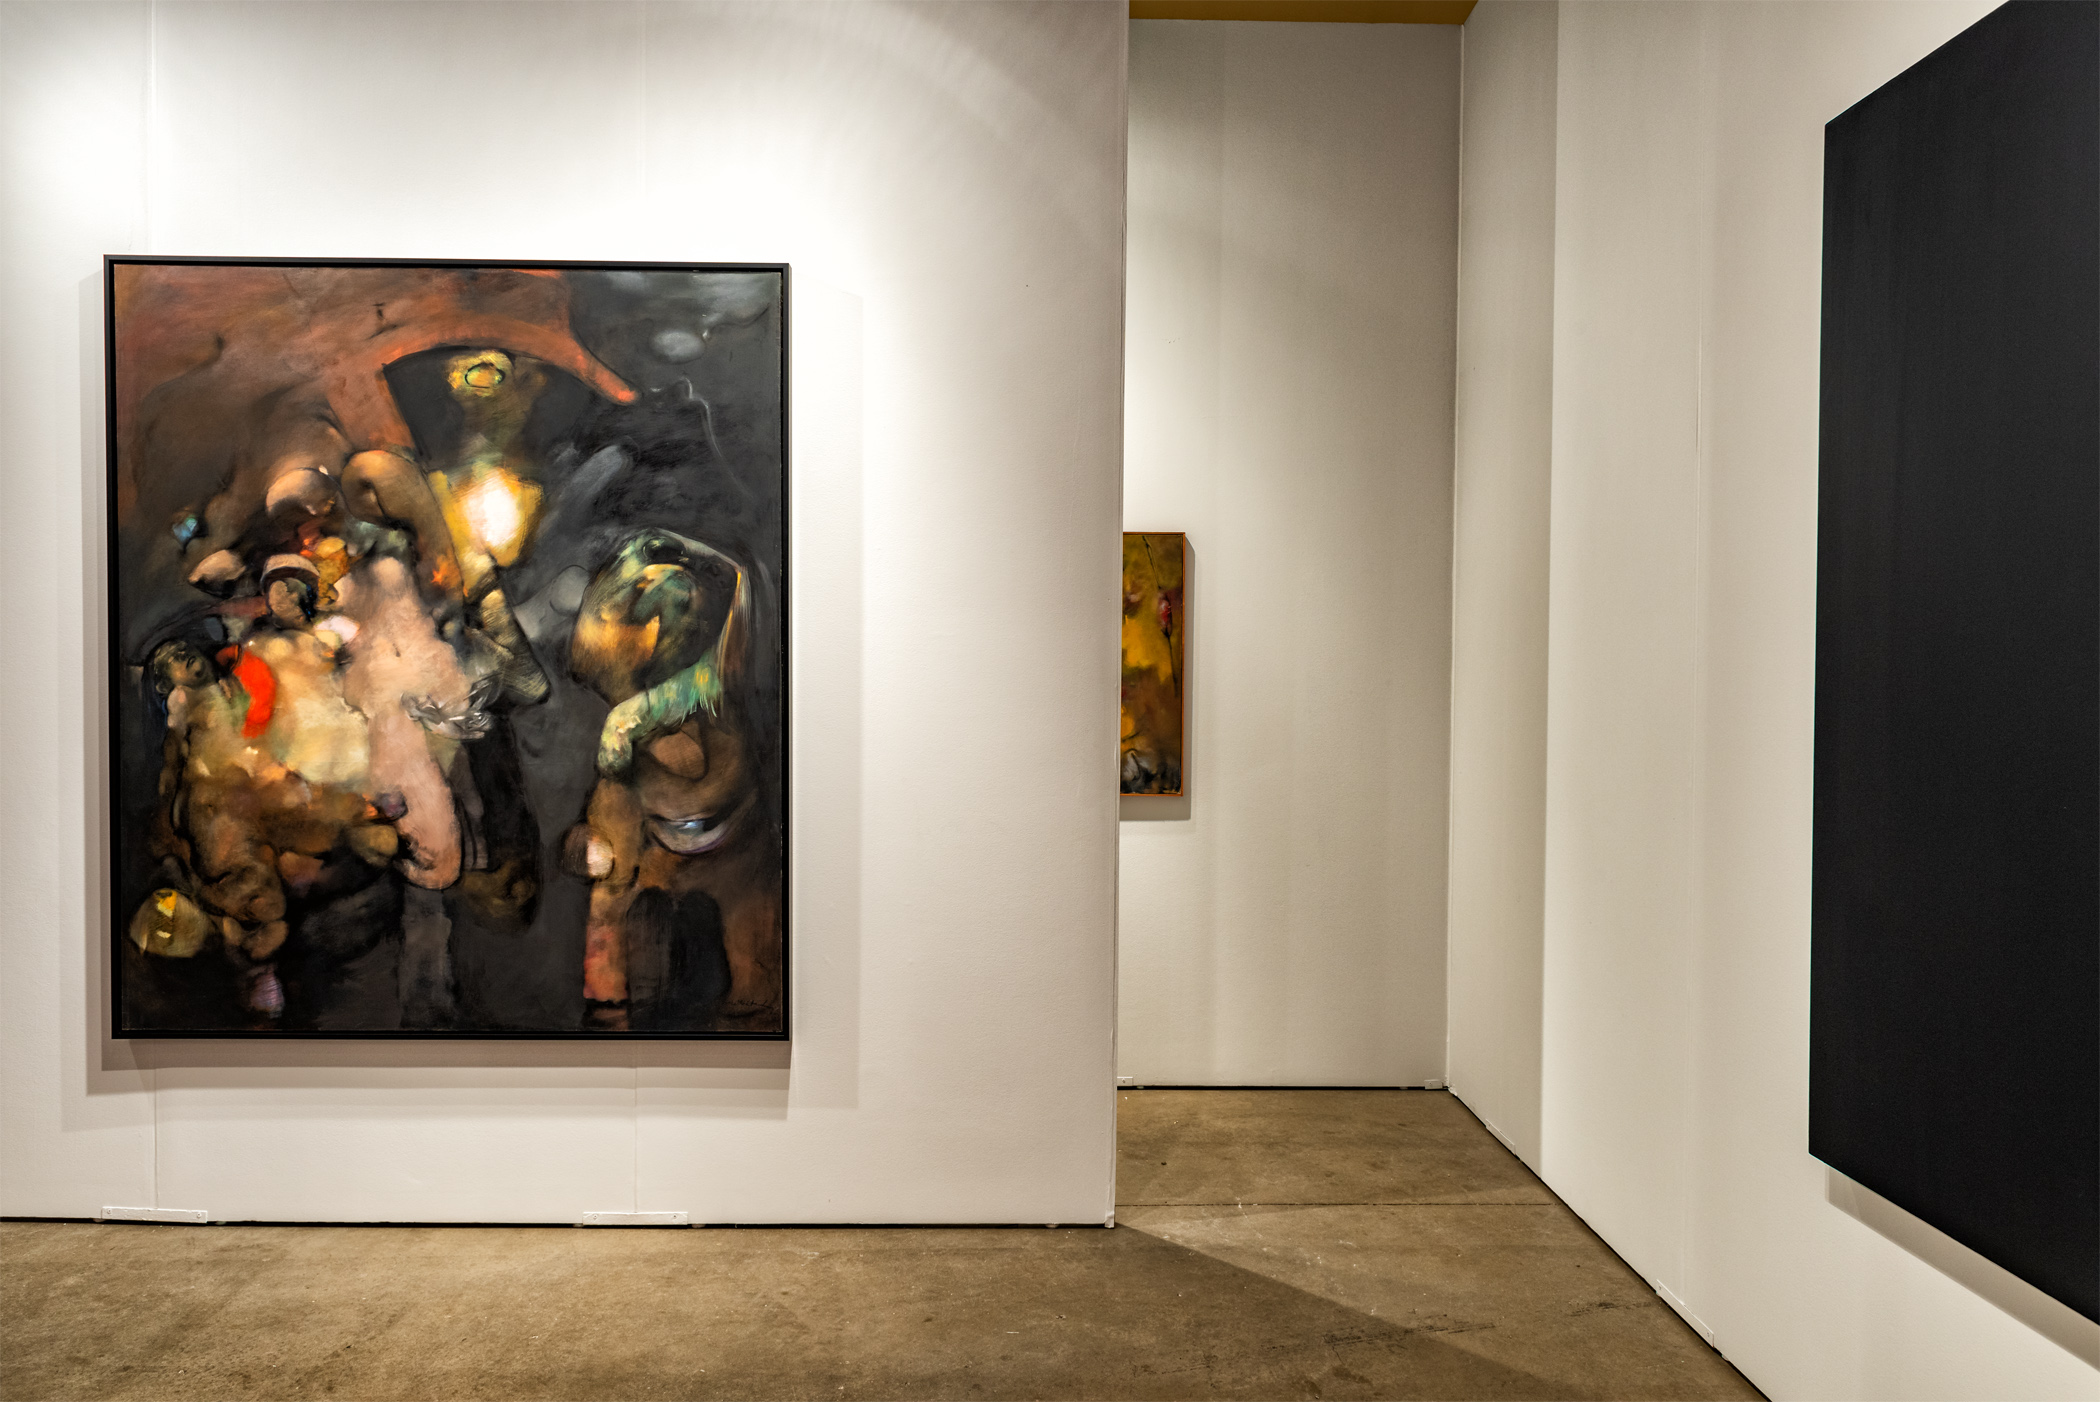 EXPO Chicago 2018,  installation view, Navy Pier, 600 E Grand Ave, Chicago, IL 60611, Booth 400, September 27 - 30, 2018